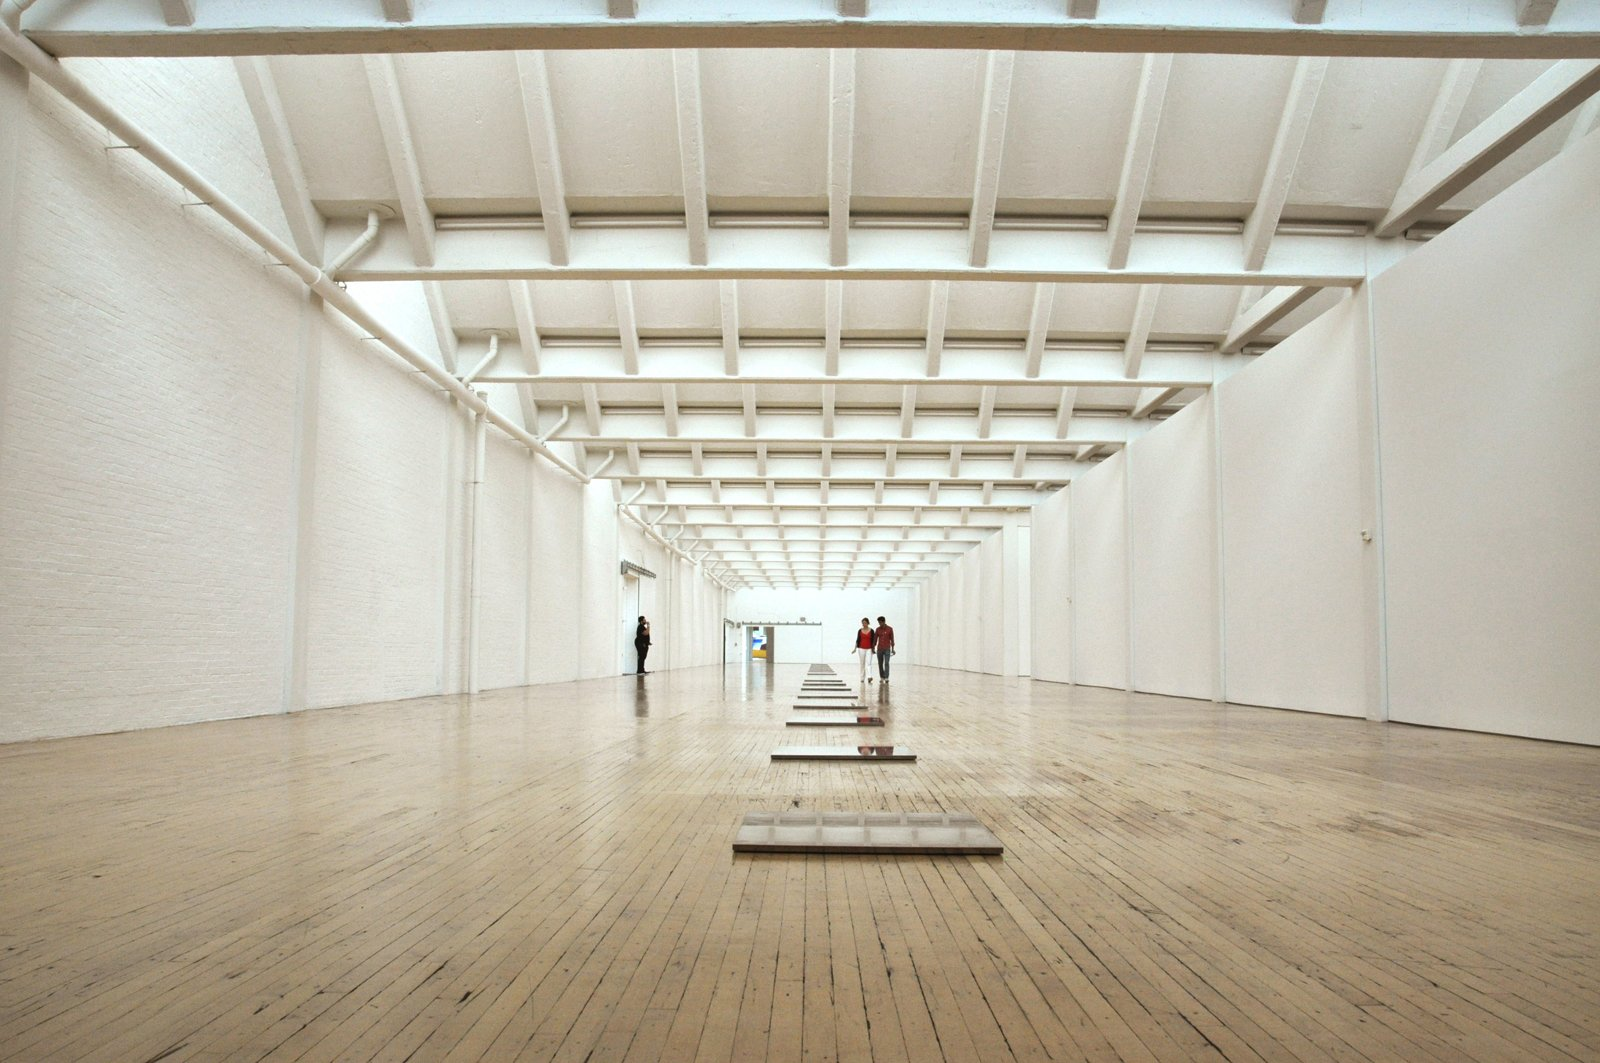 One unusual fact about Dia:Beacon is that the galleries are lit almost entirely by natural light. As a result, the museum's hours may vary seasonally. If you're planning an upcoming visit, be sure to check Dia's website for updates.  Photo 7 of 27 in Weekend Detour: Beacon, New York